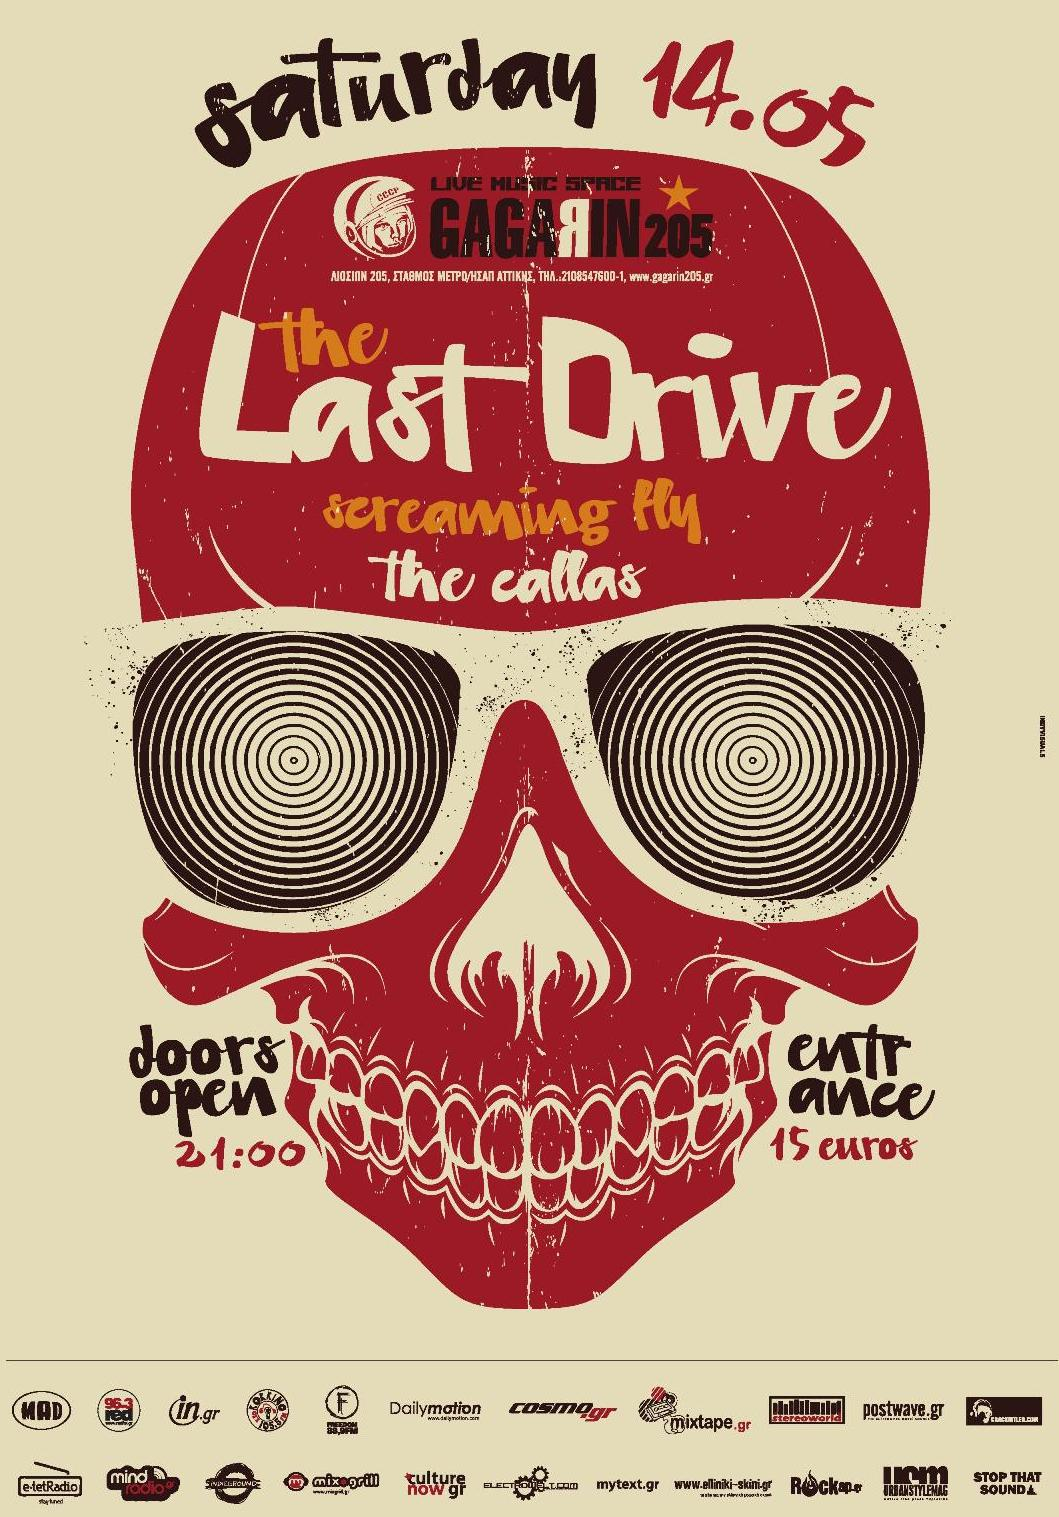 Anyone know a font similar to the last drive?!